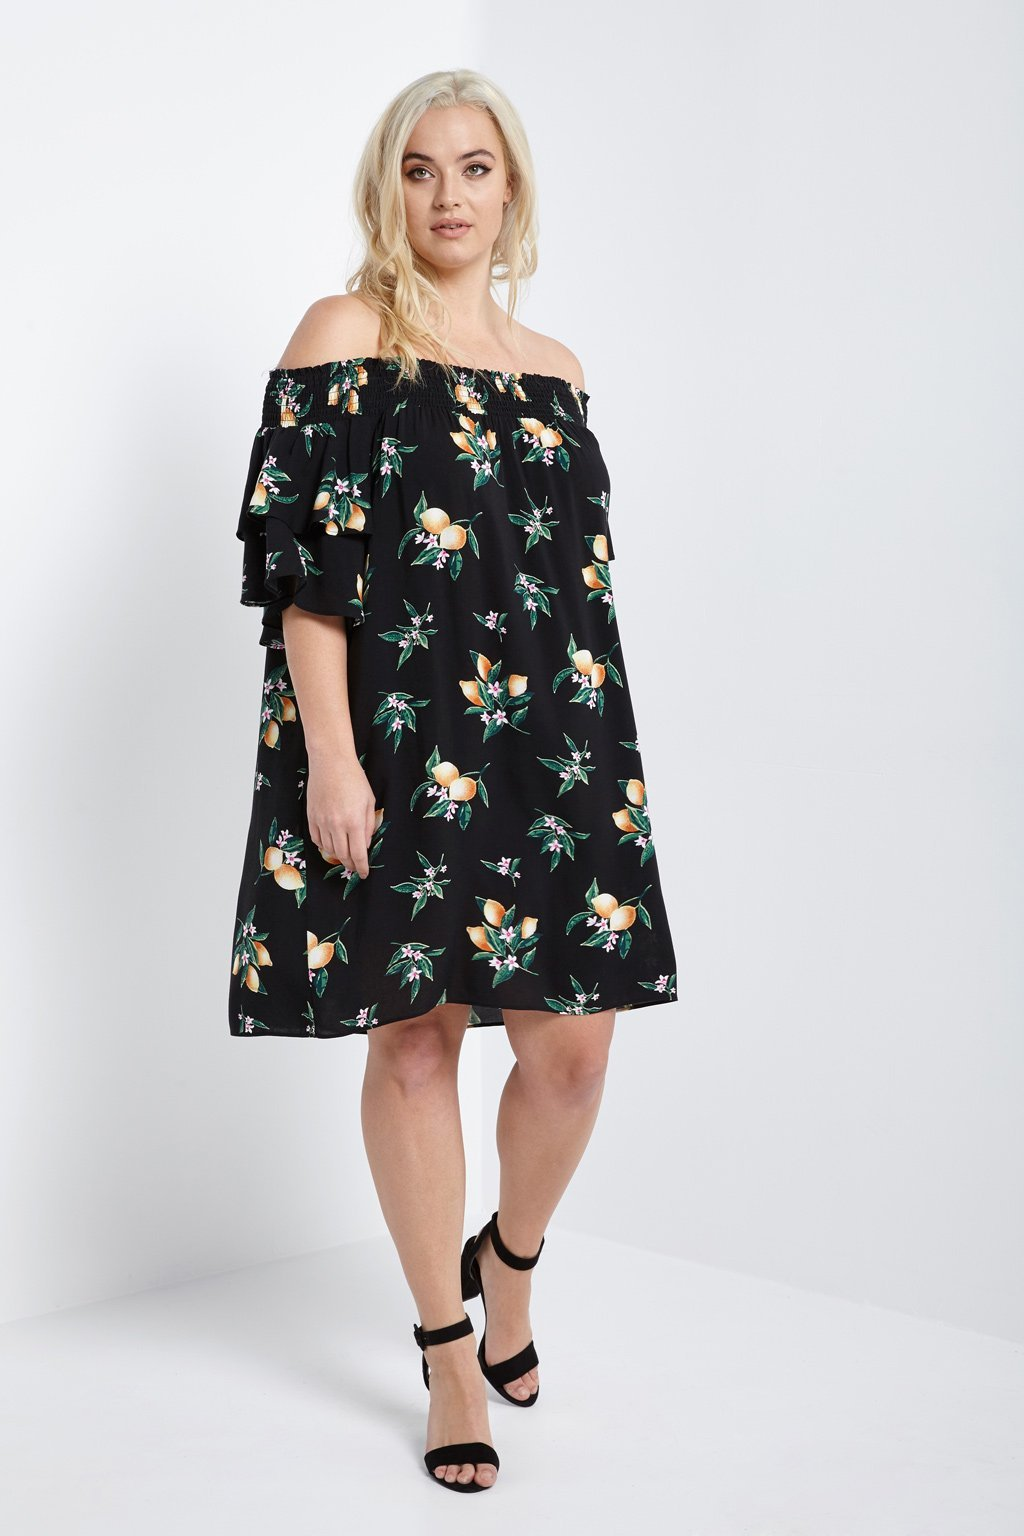 Poshsquare Plus 1XL / Black Lemon Floral Off the Shoulder Dress Plus Size